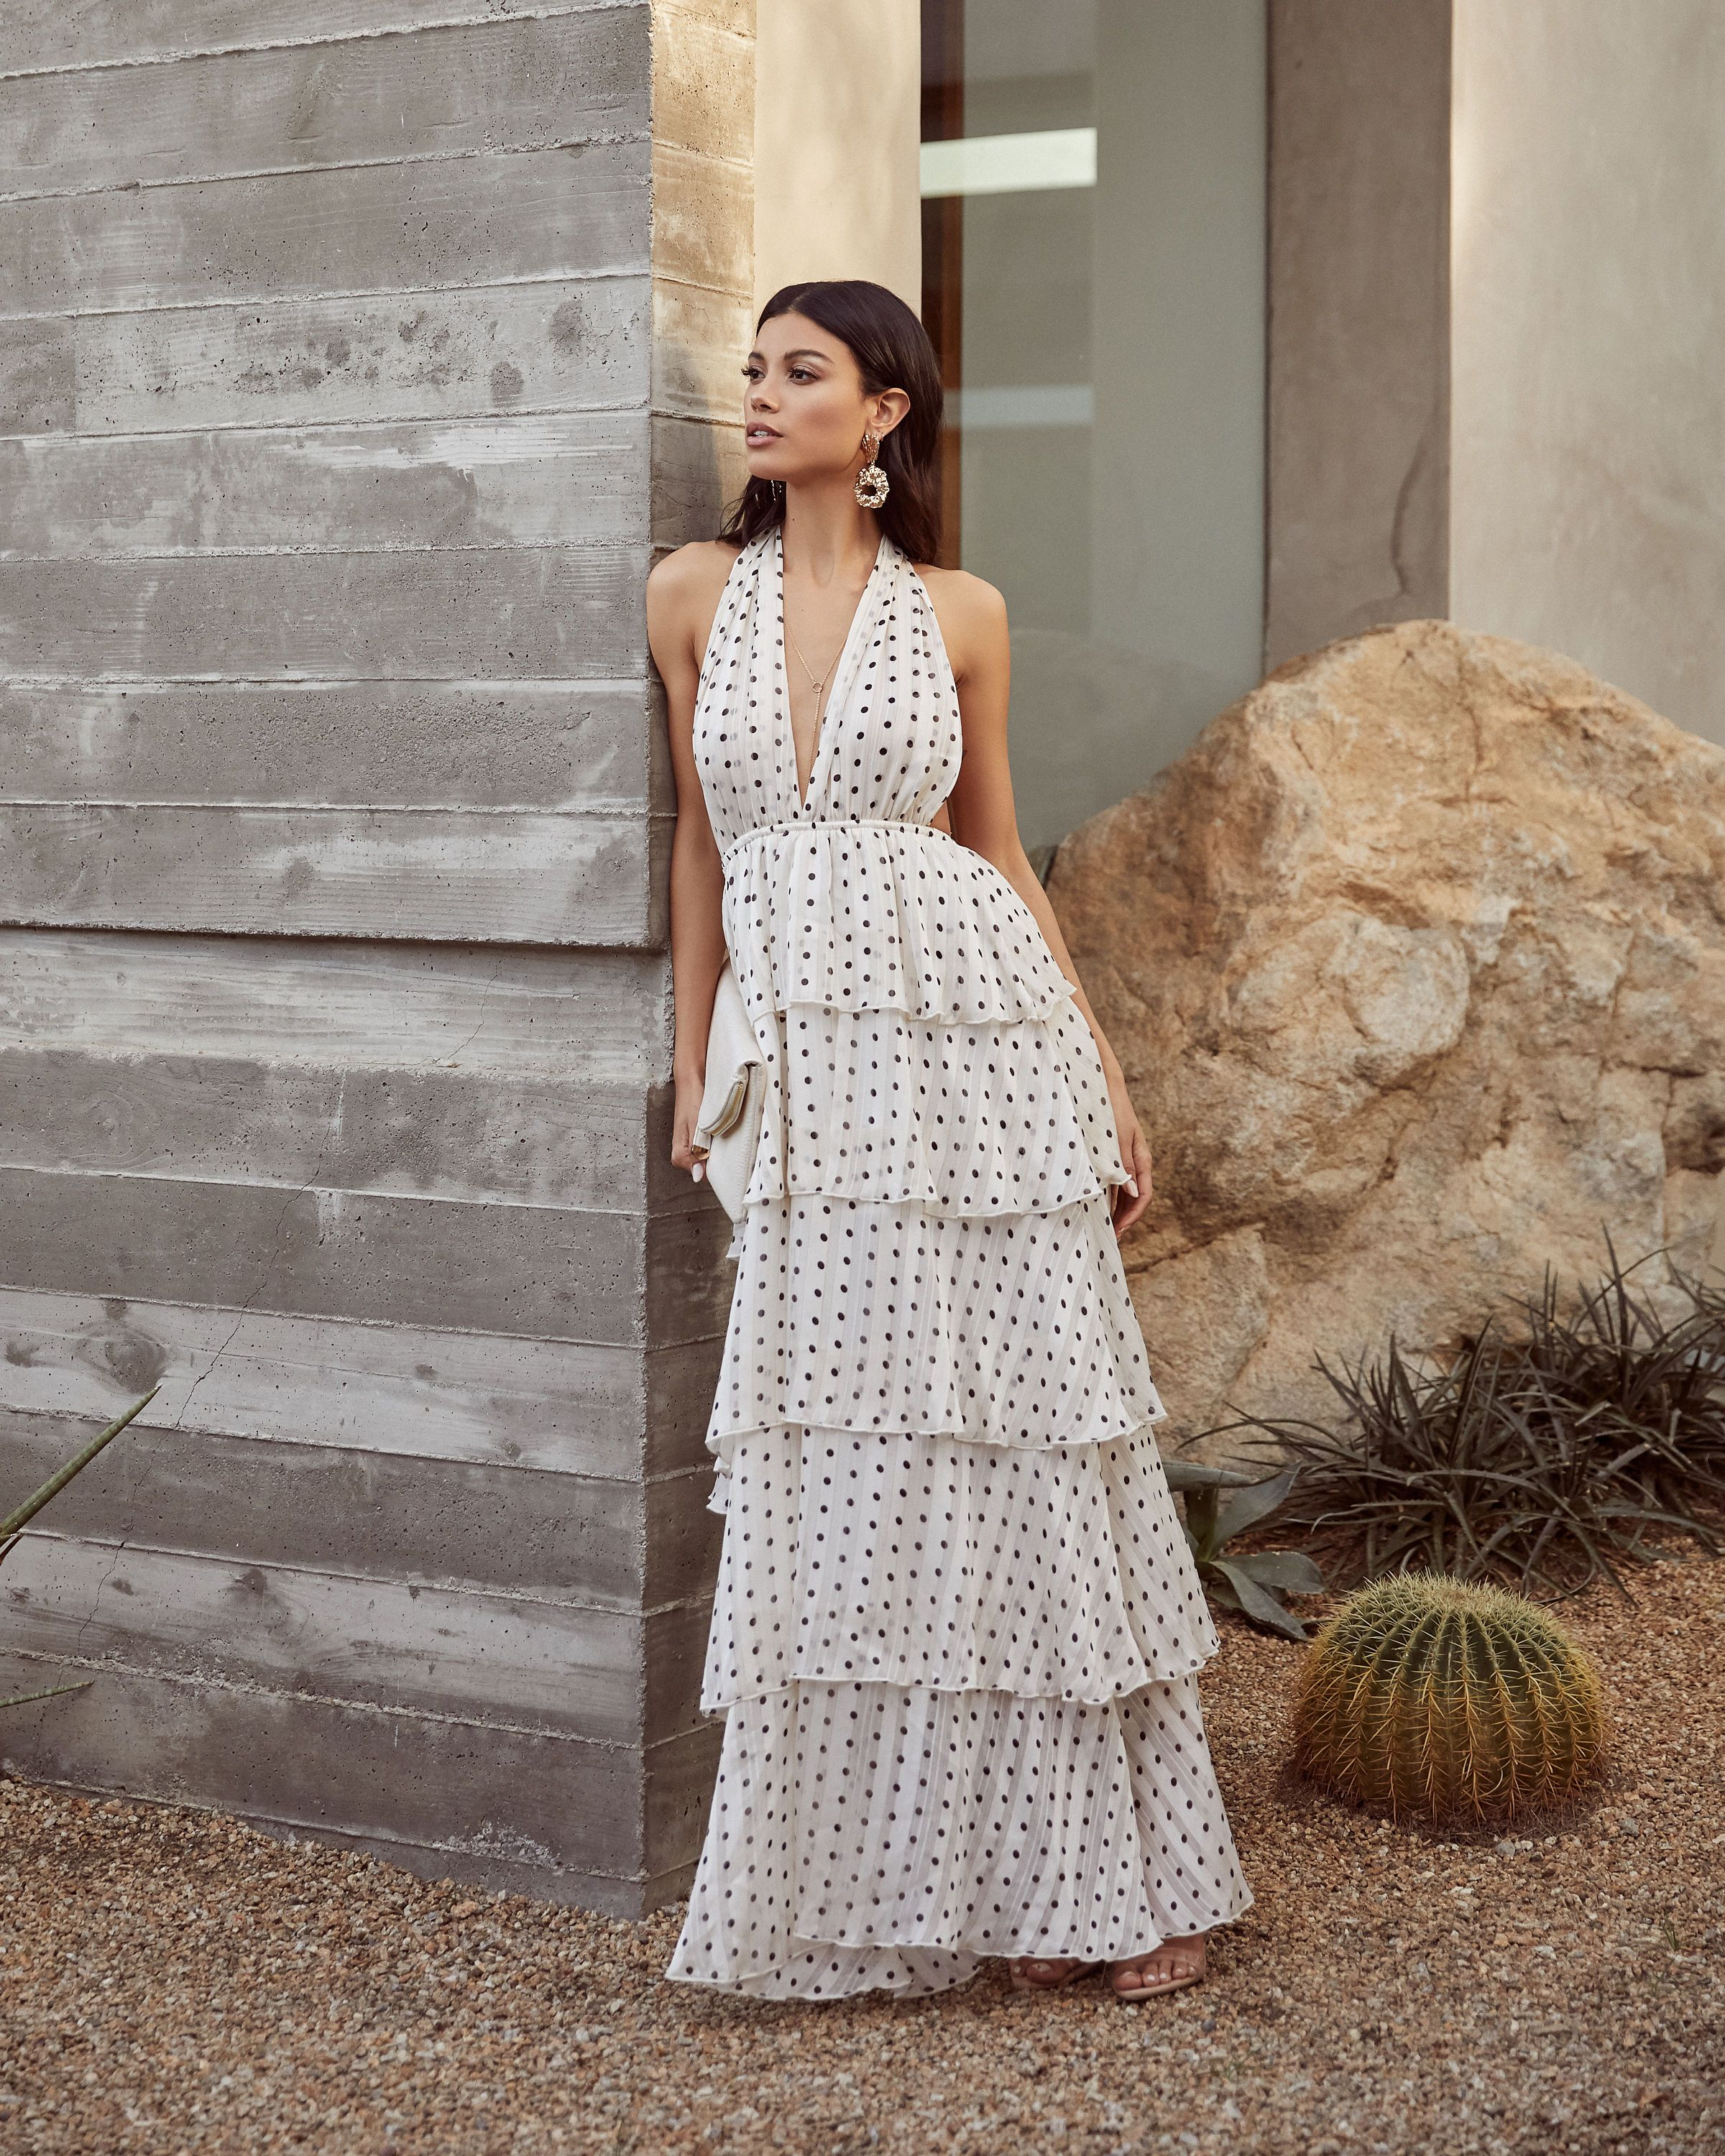 Shop Dresses With Vici Save 20 With Code March20 Maxi Dress Floral Maxi Dress Outfit Polka Dot Maxi Dresses [ 3000 x 2400 Pixel ]